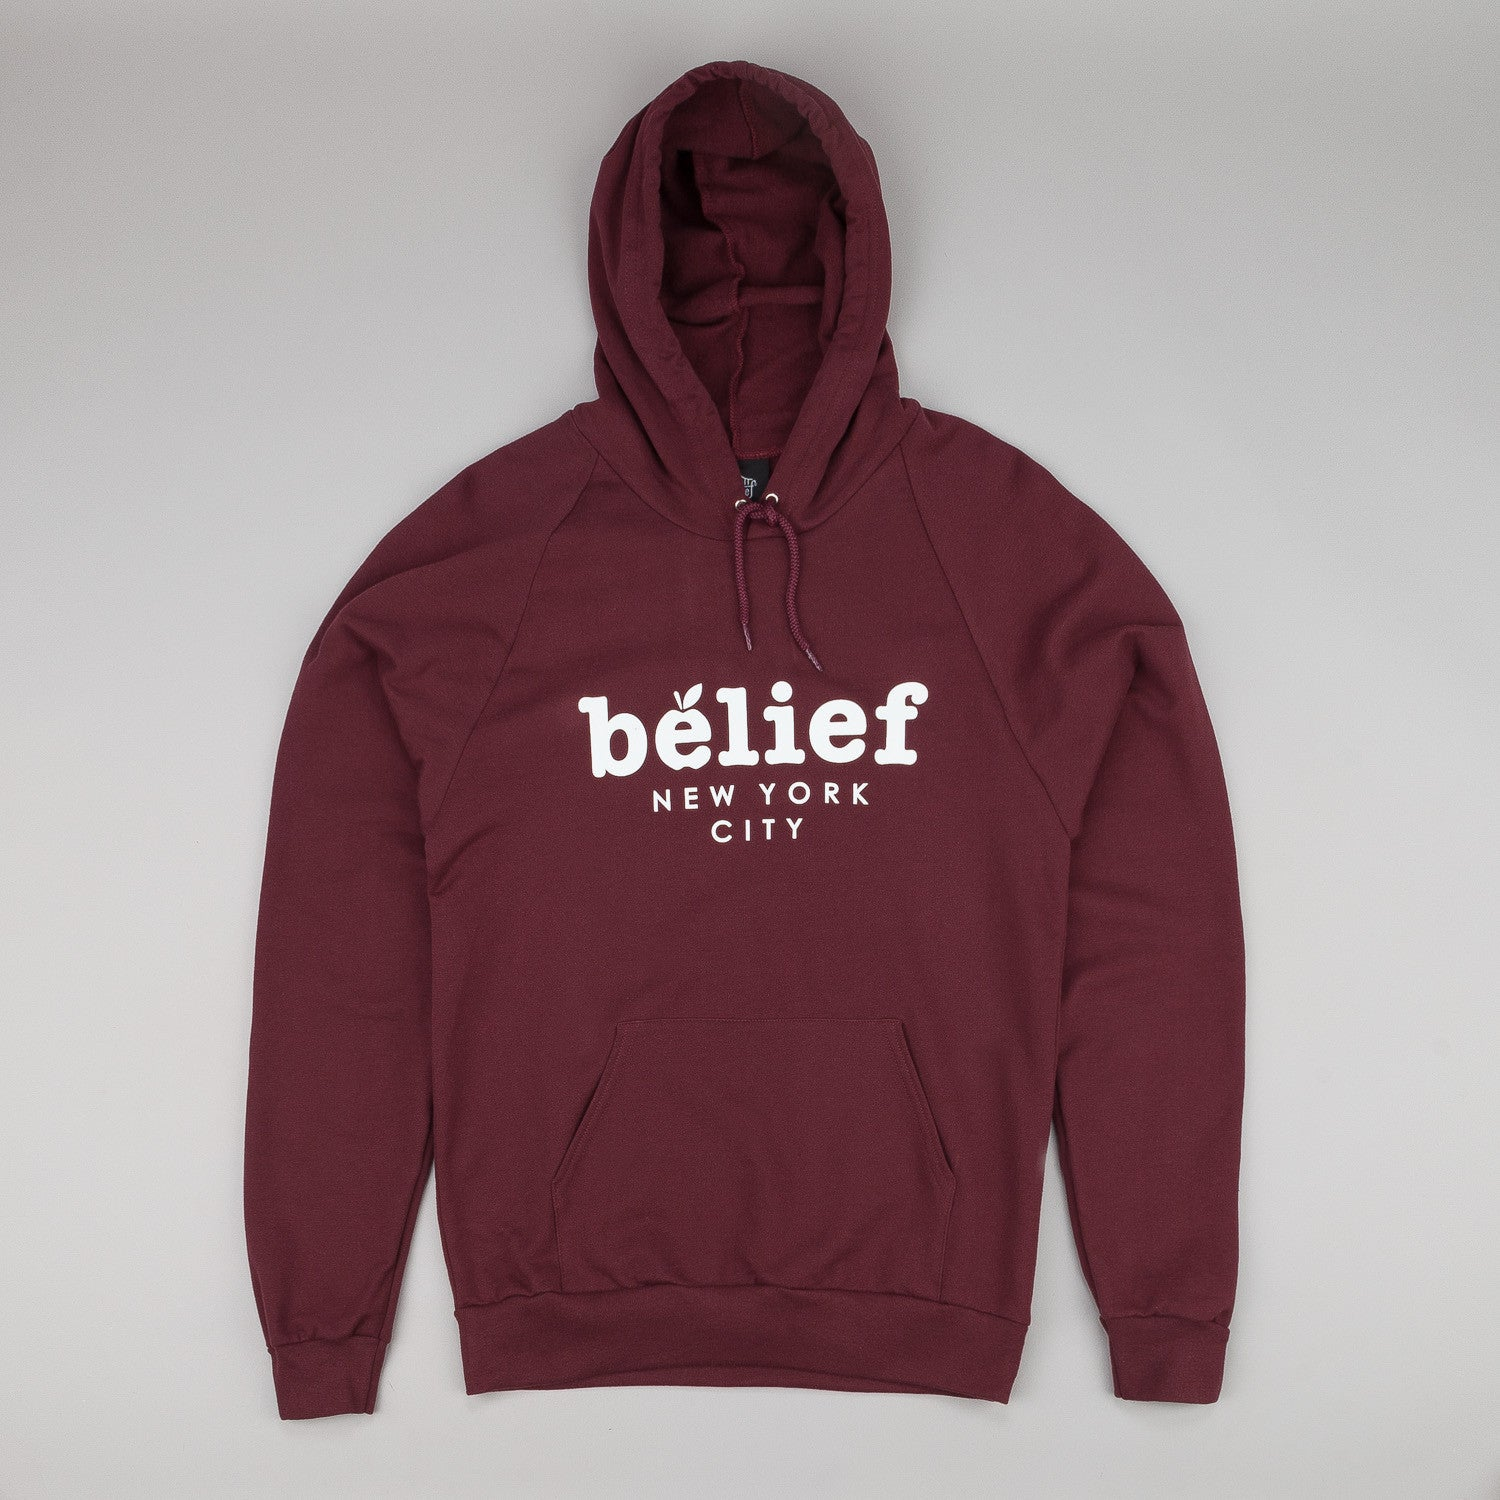 Belief Market Hooded Sweatshirt